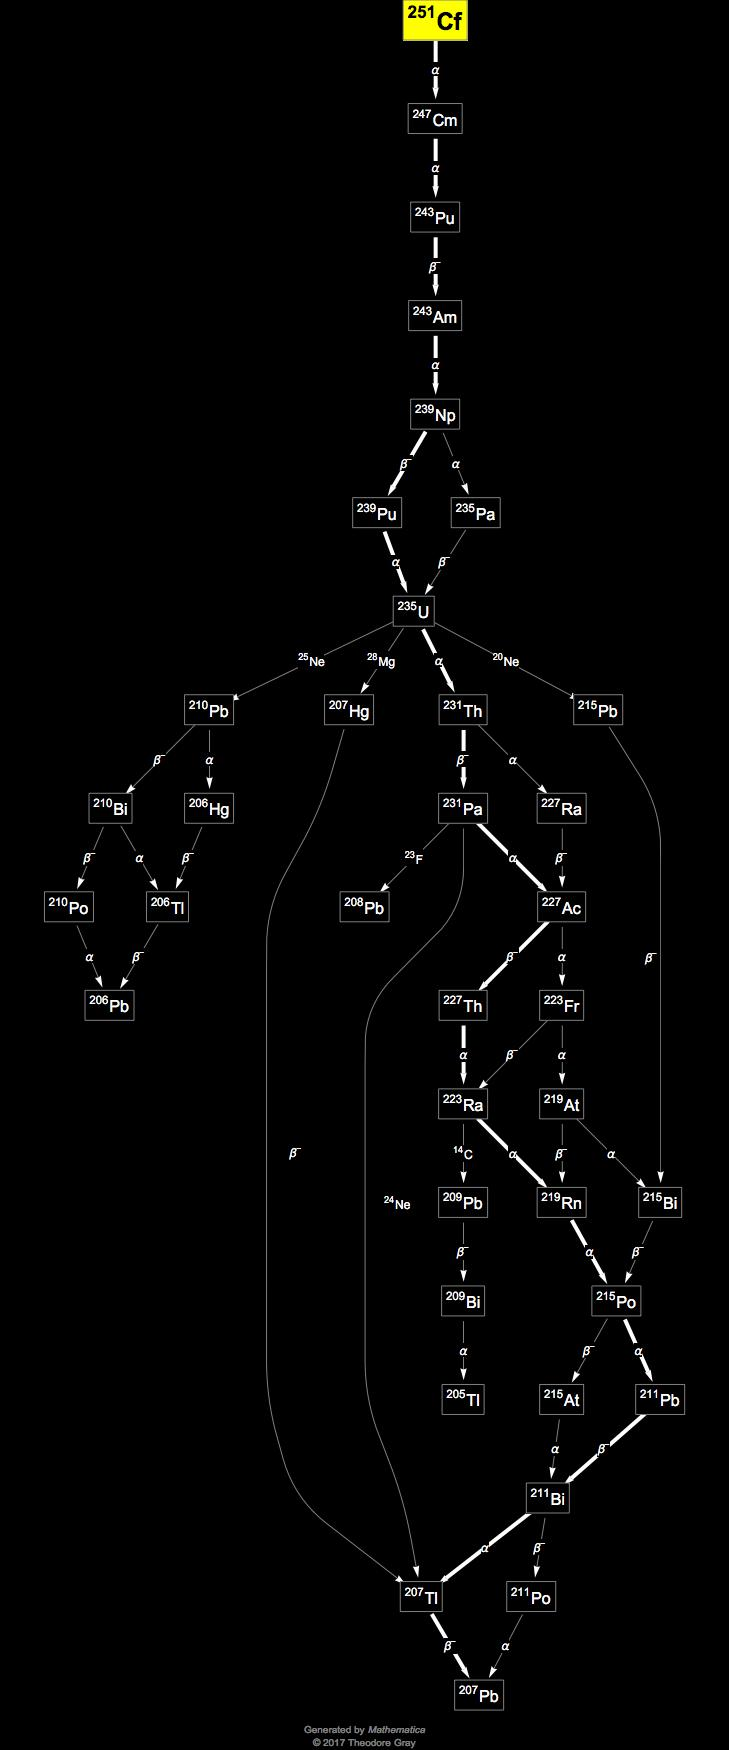 Isotope data for californium 251 in the periodic table decay chain image generated by mathematicas graphplot and isotopedata functions from wolfram research inc gamestrikefo Images